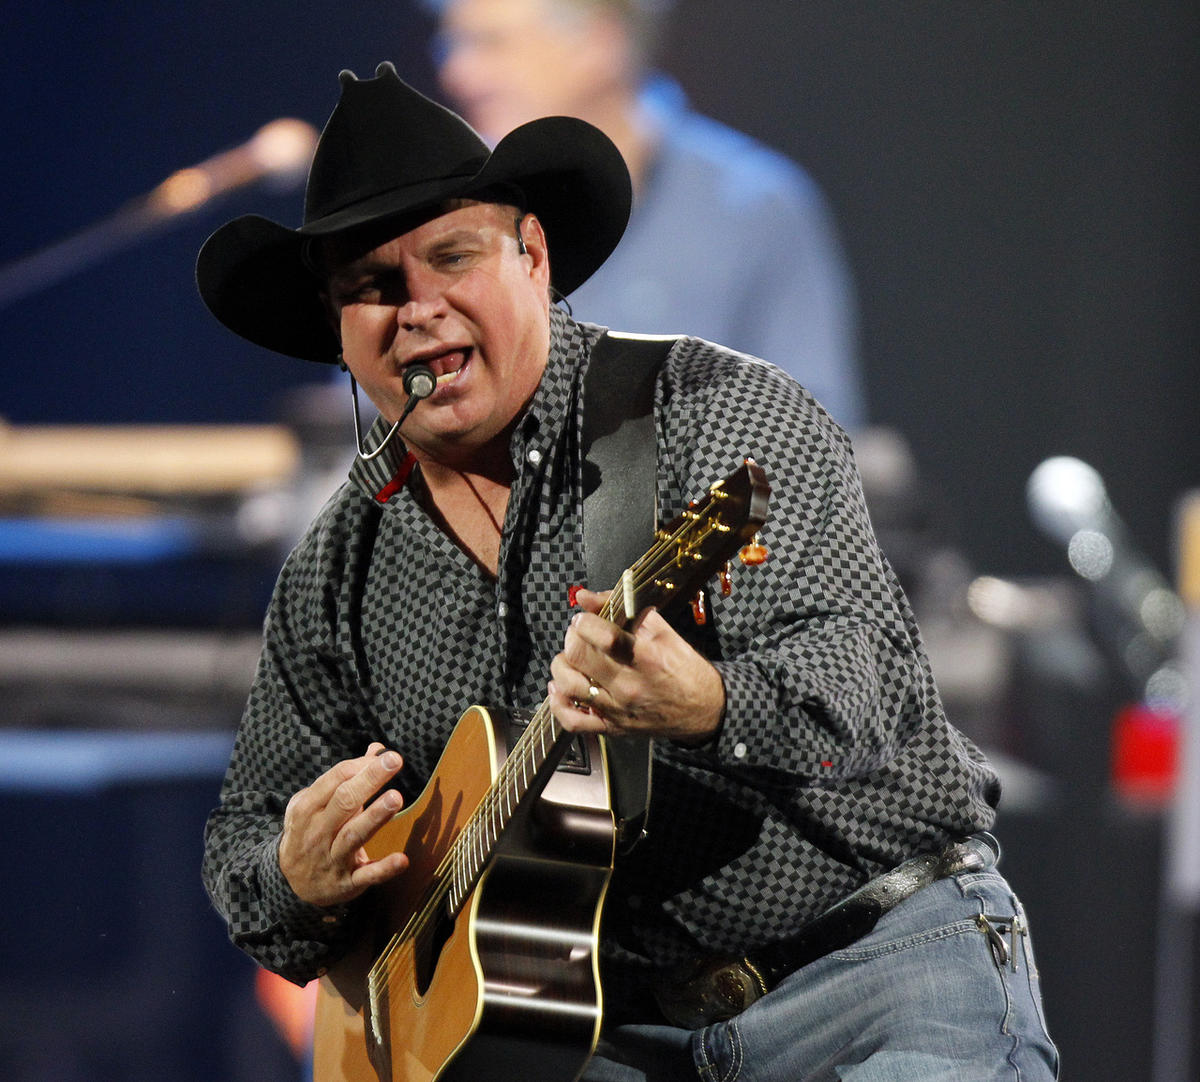 Garth Brooks performs his first of four shows at the Vivint Arena in Salt Lake City on Thursday, Oct. 29, 2015.